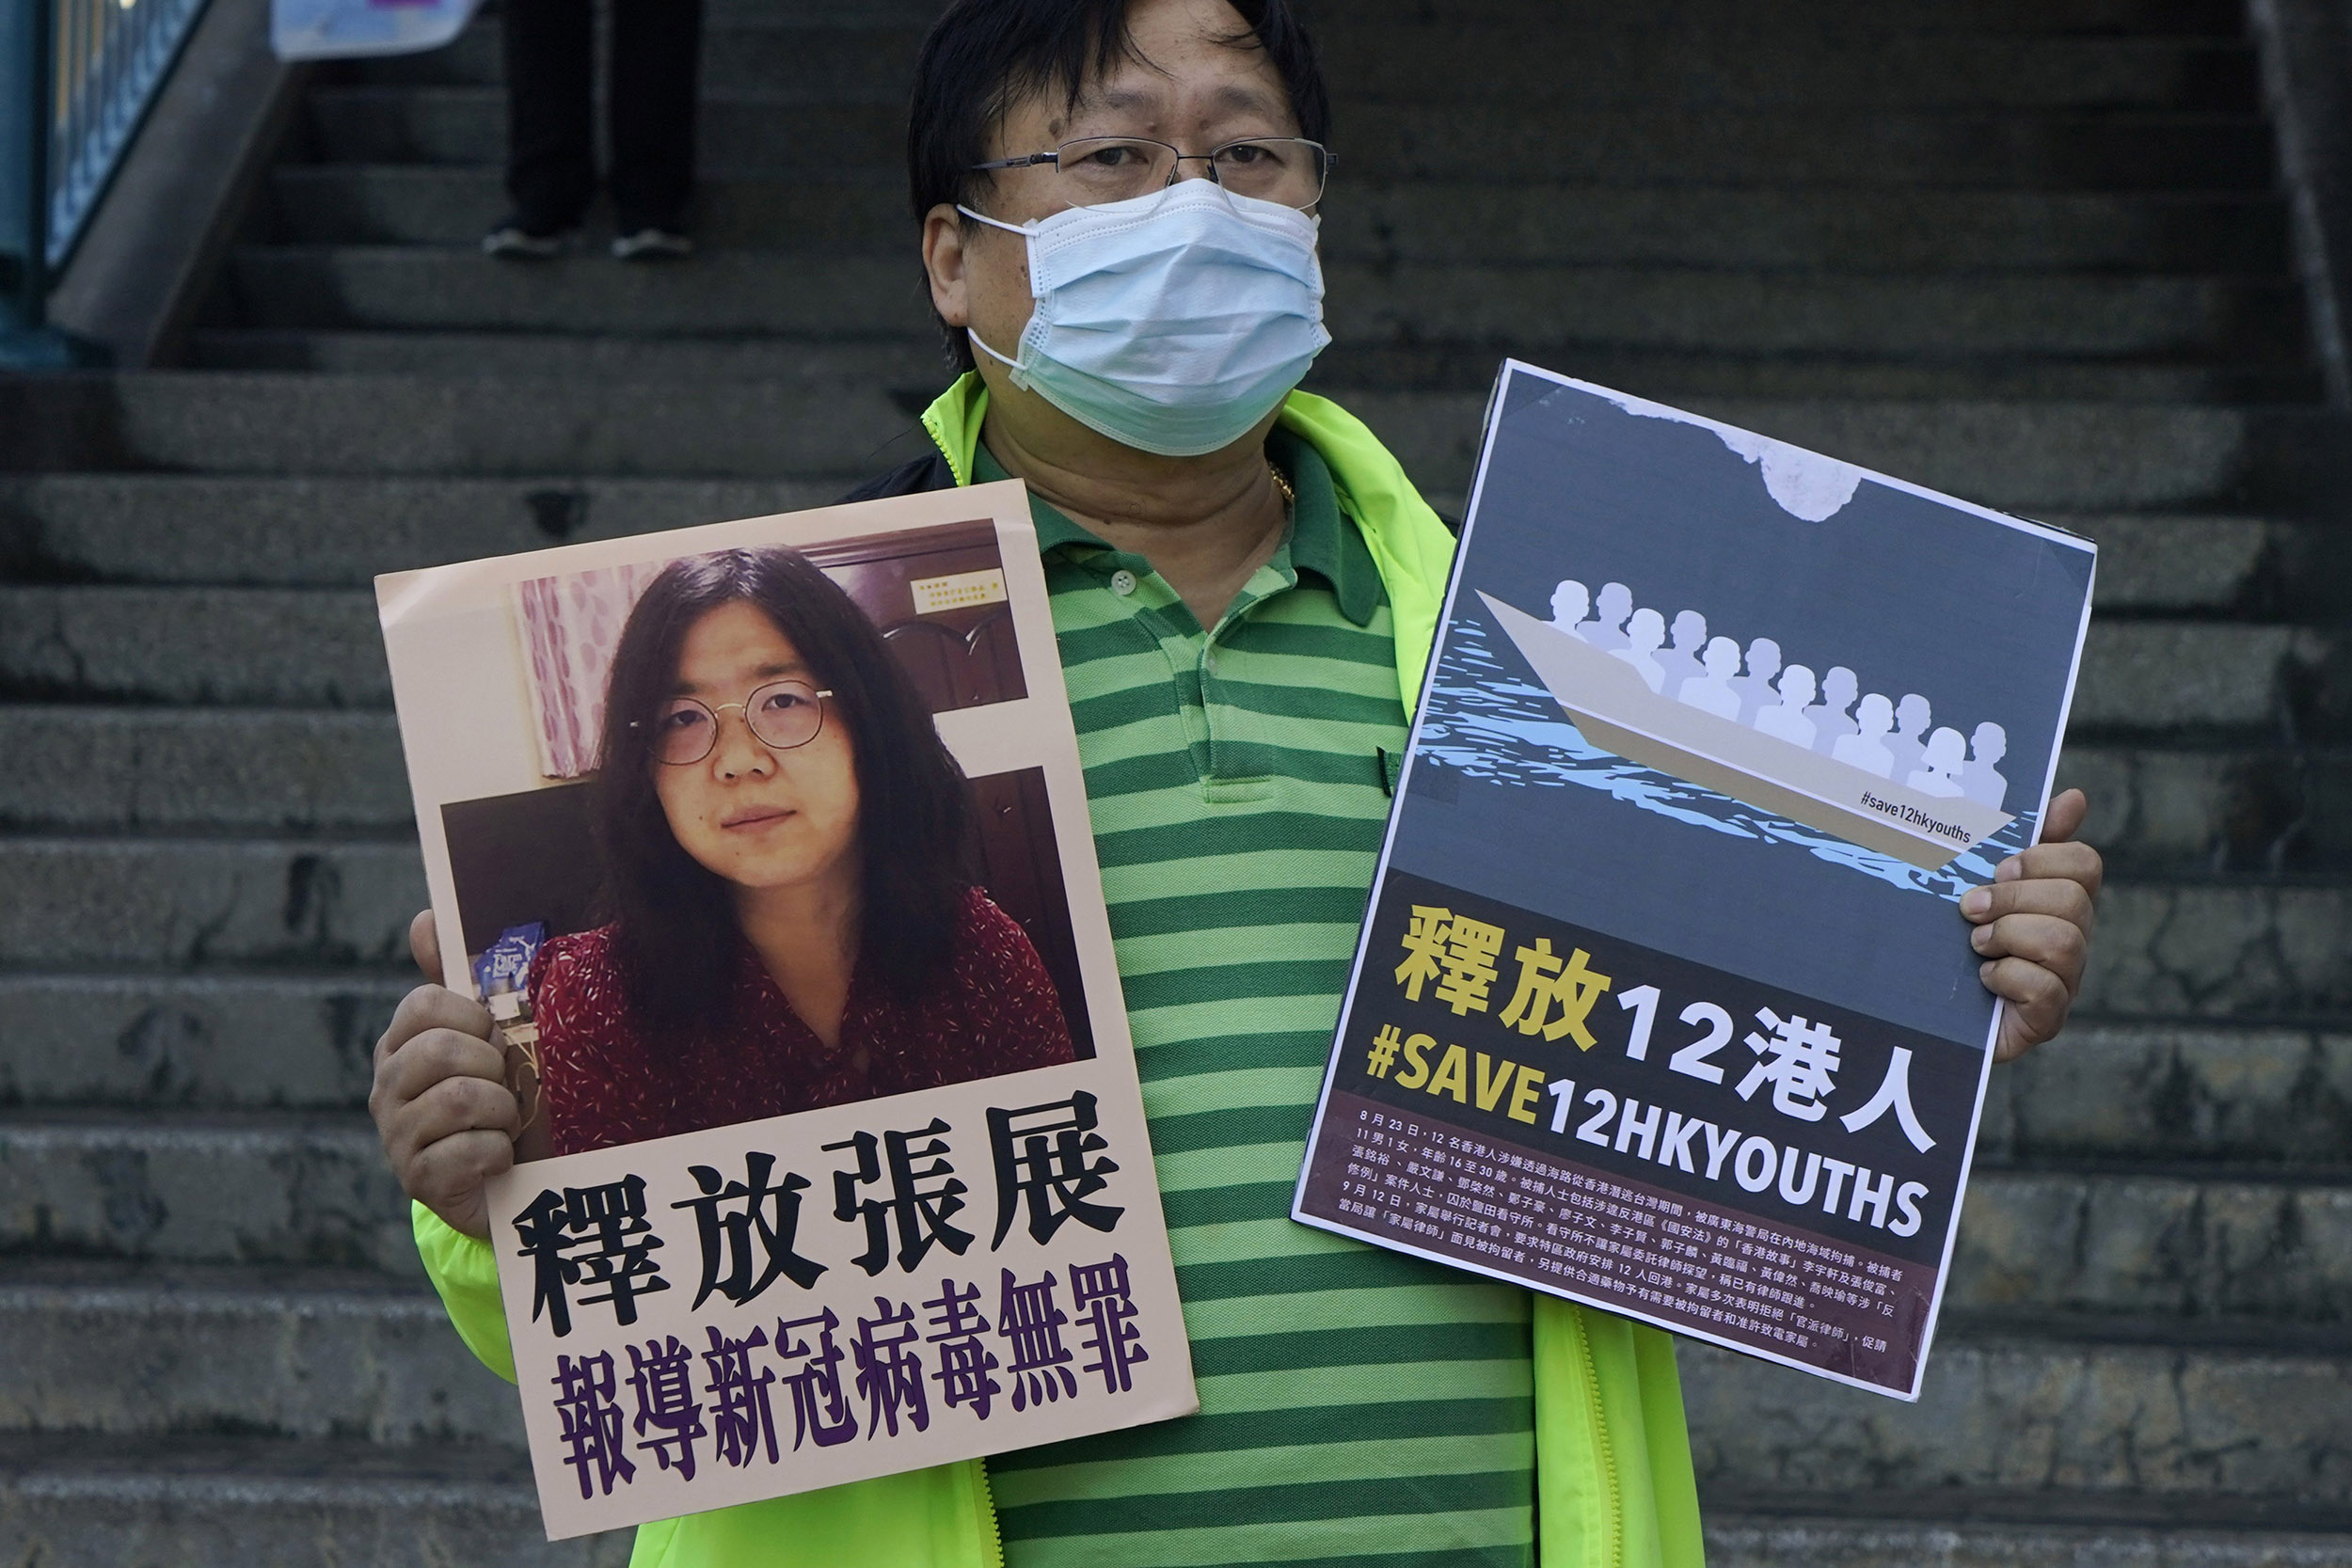 Chinese citizen journalist Zhang Zhan jailed for 'provoking trouble' with  Wuhan reporting